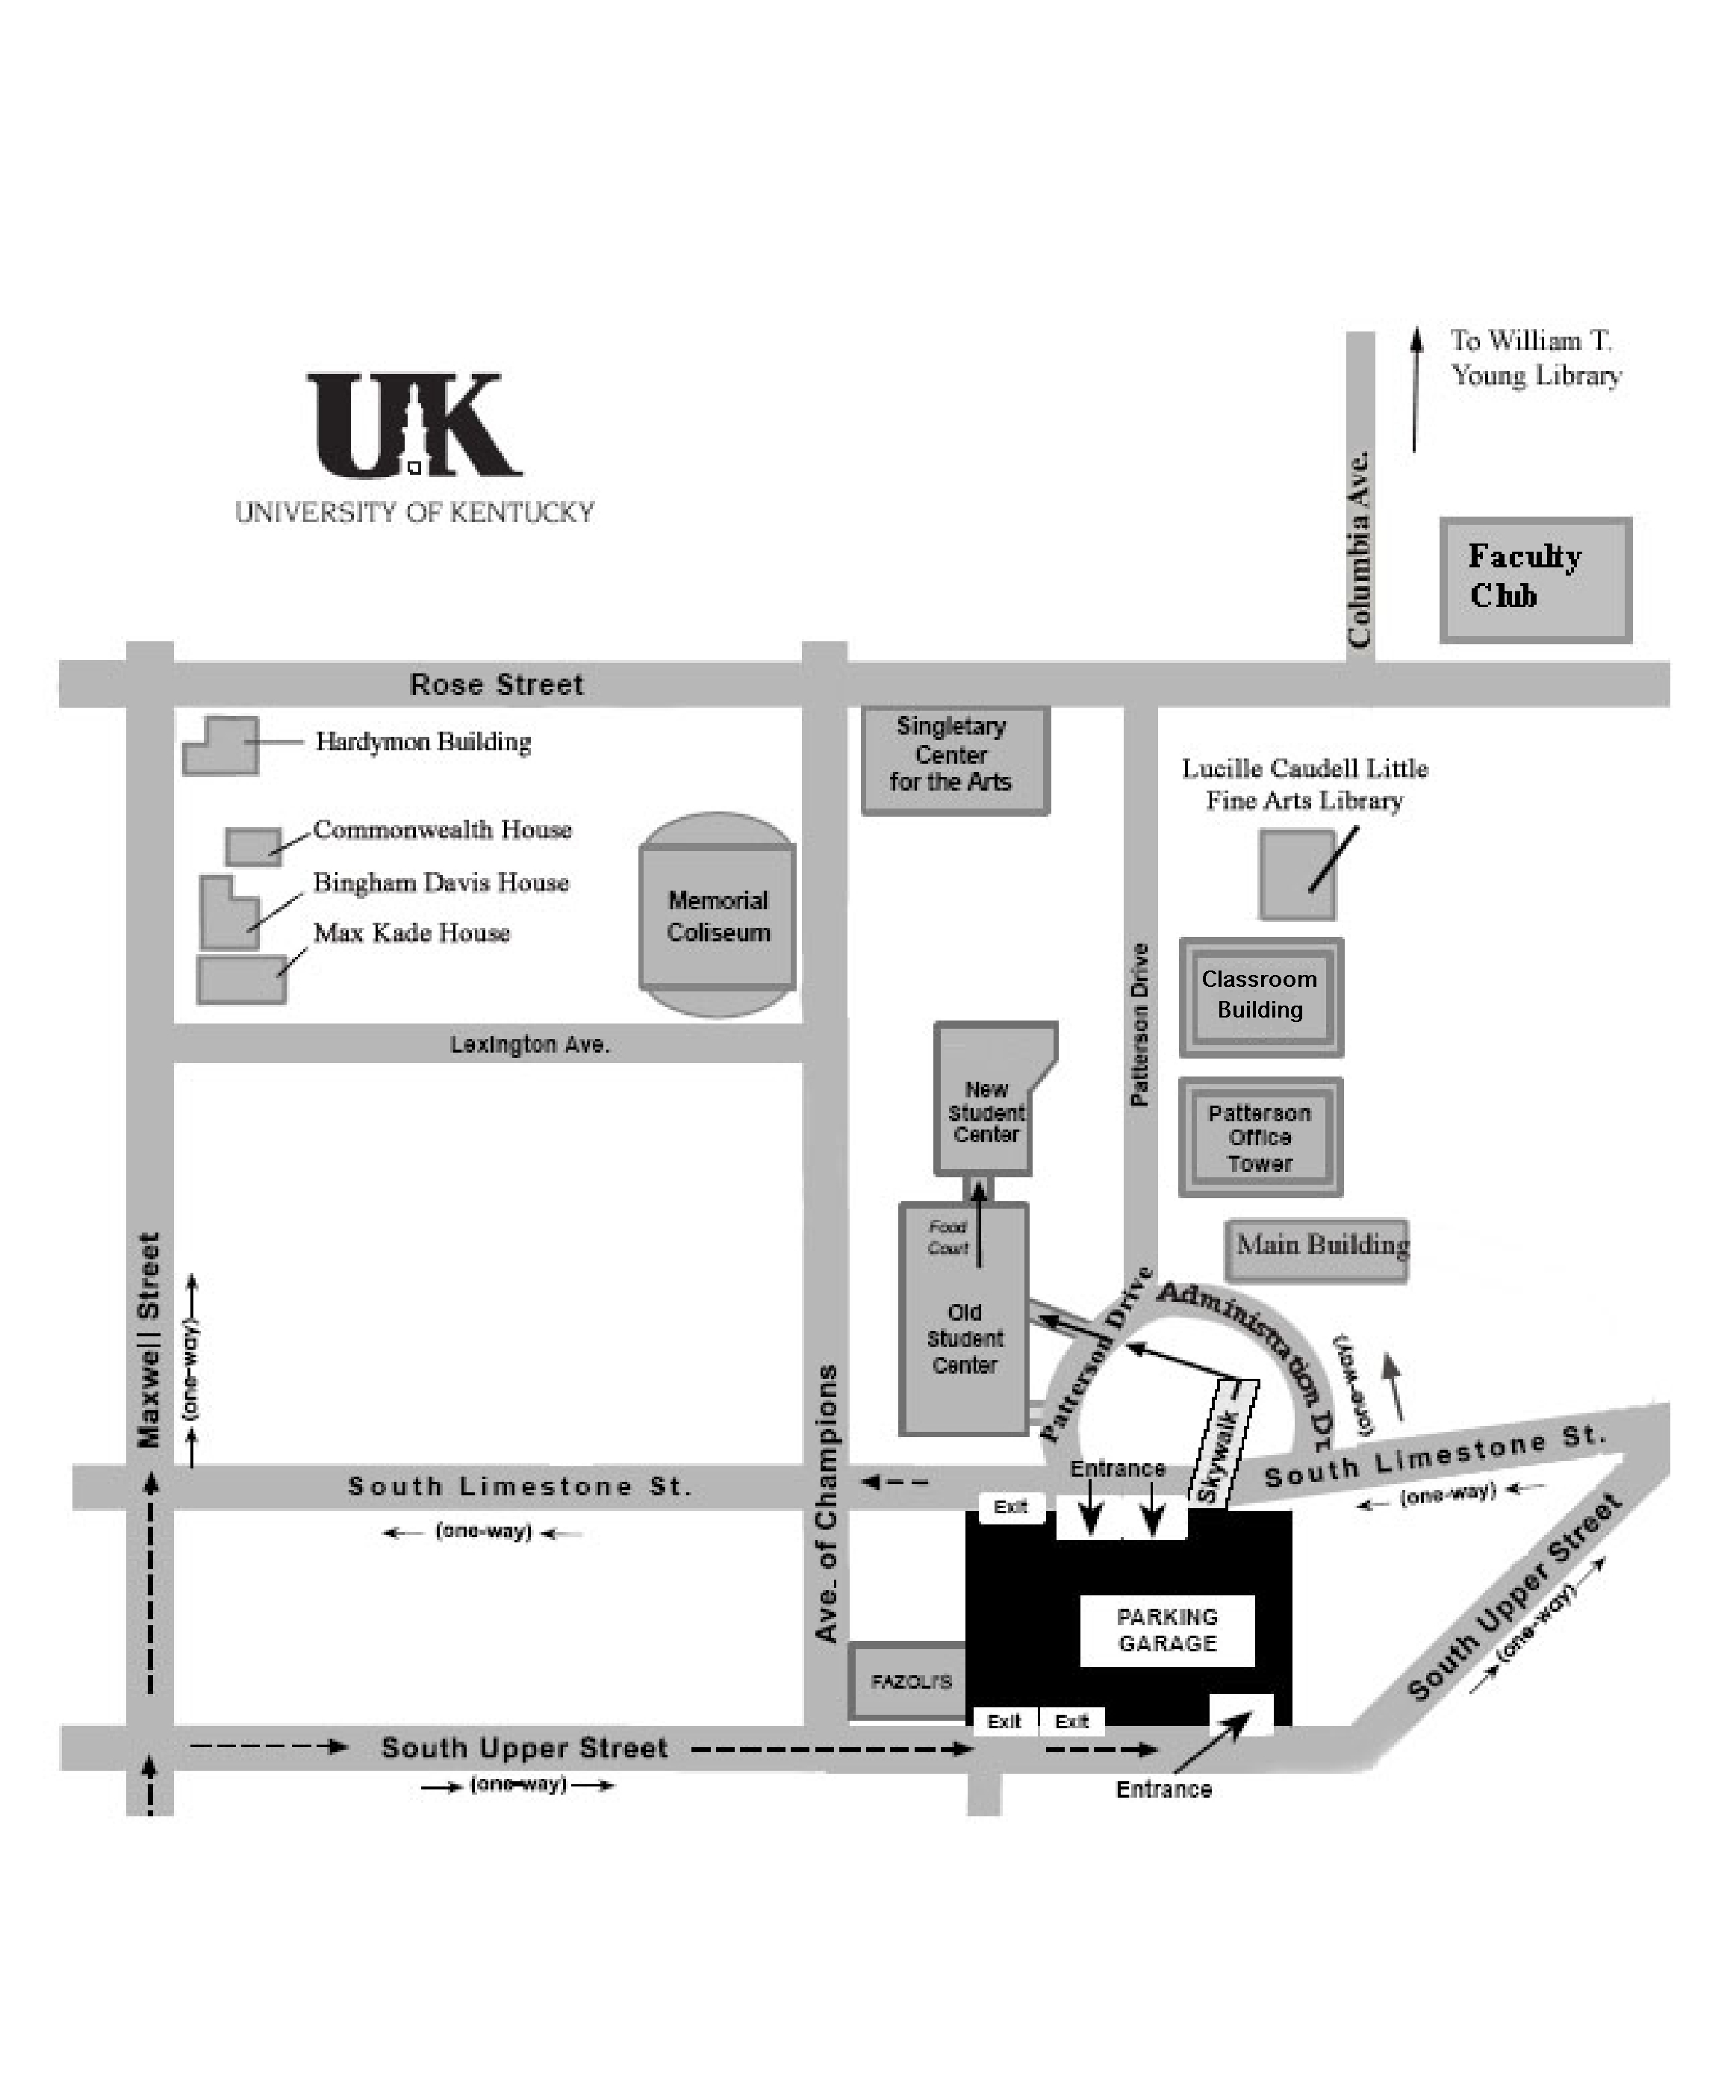 Kentucky Campus Map.University Of Kentucky Campus Map Lexington Kentucky Usa Mappery